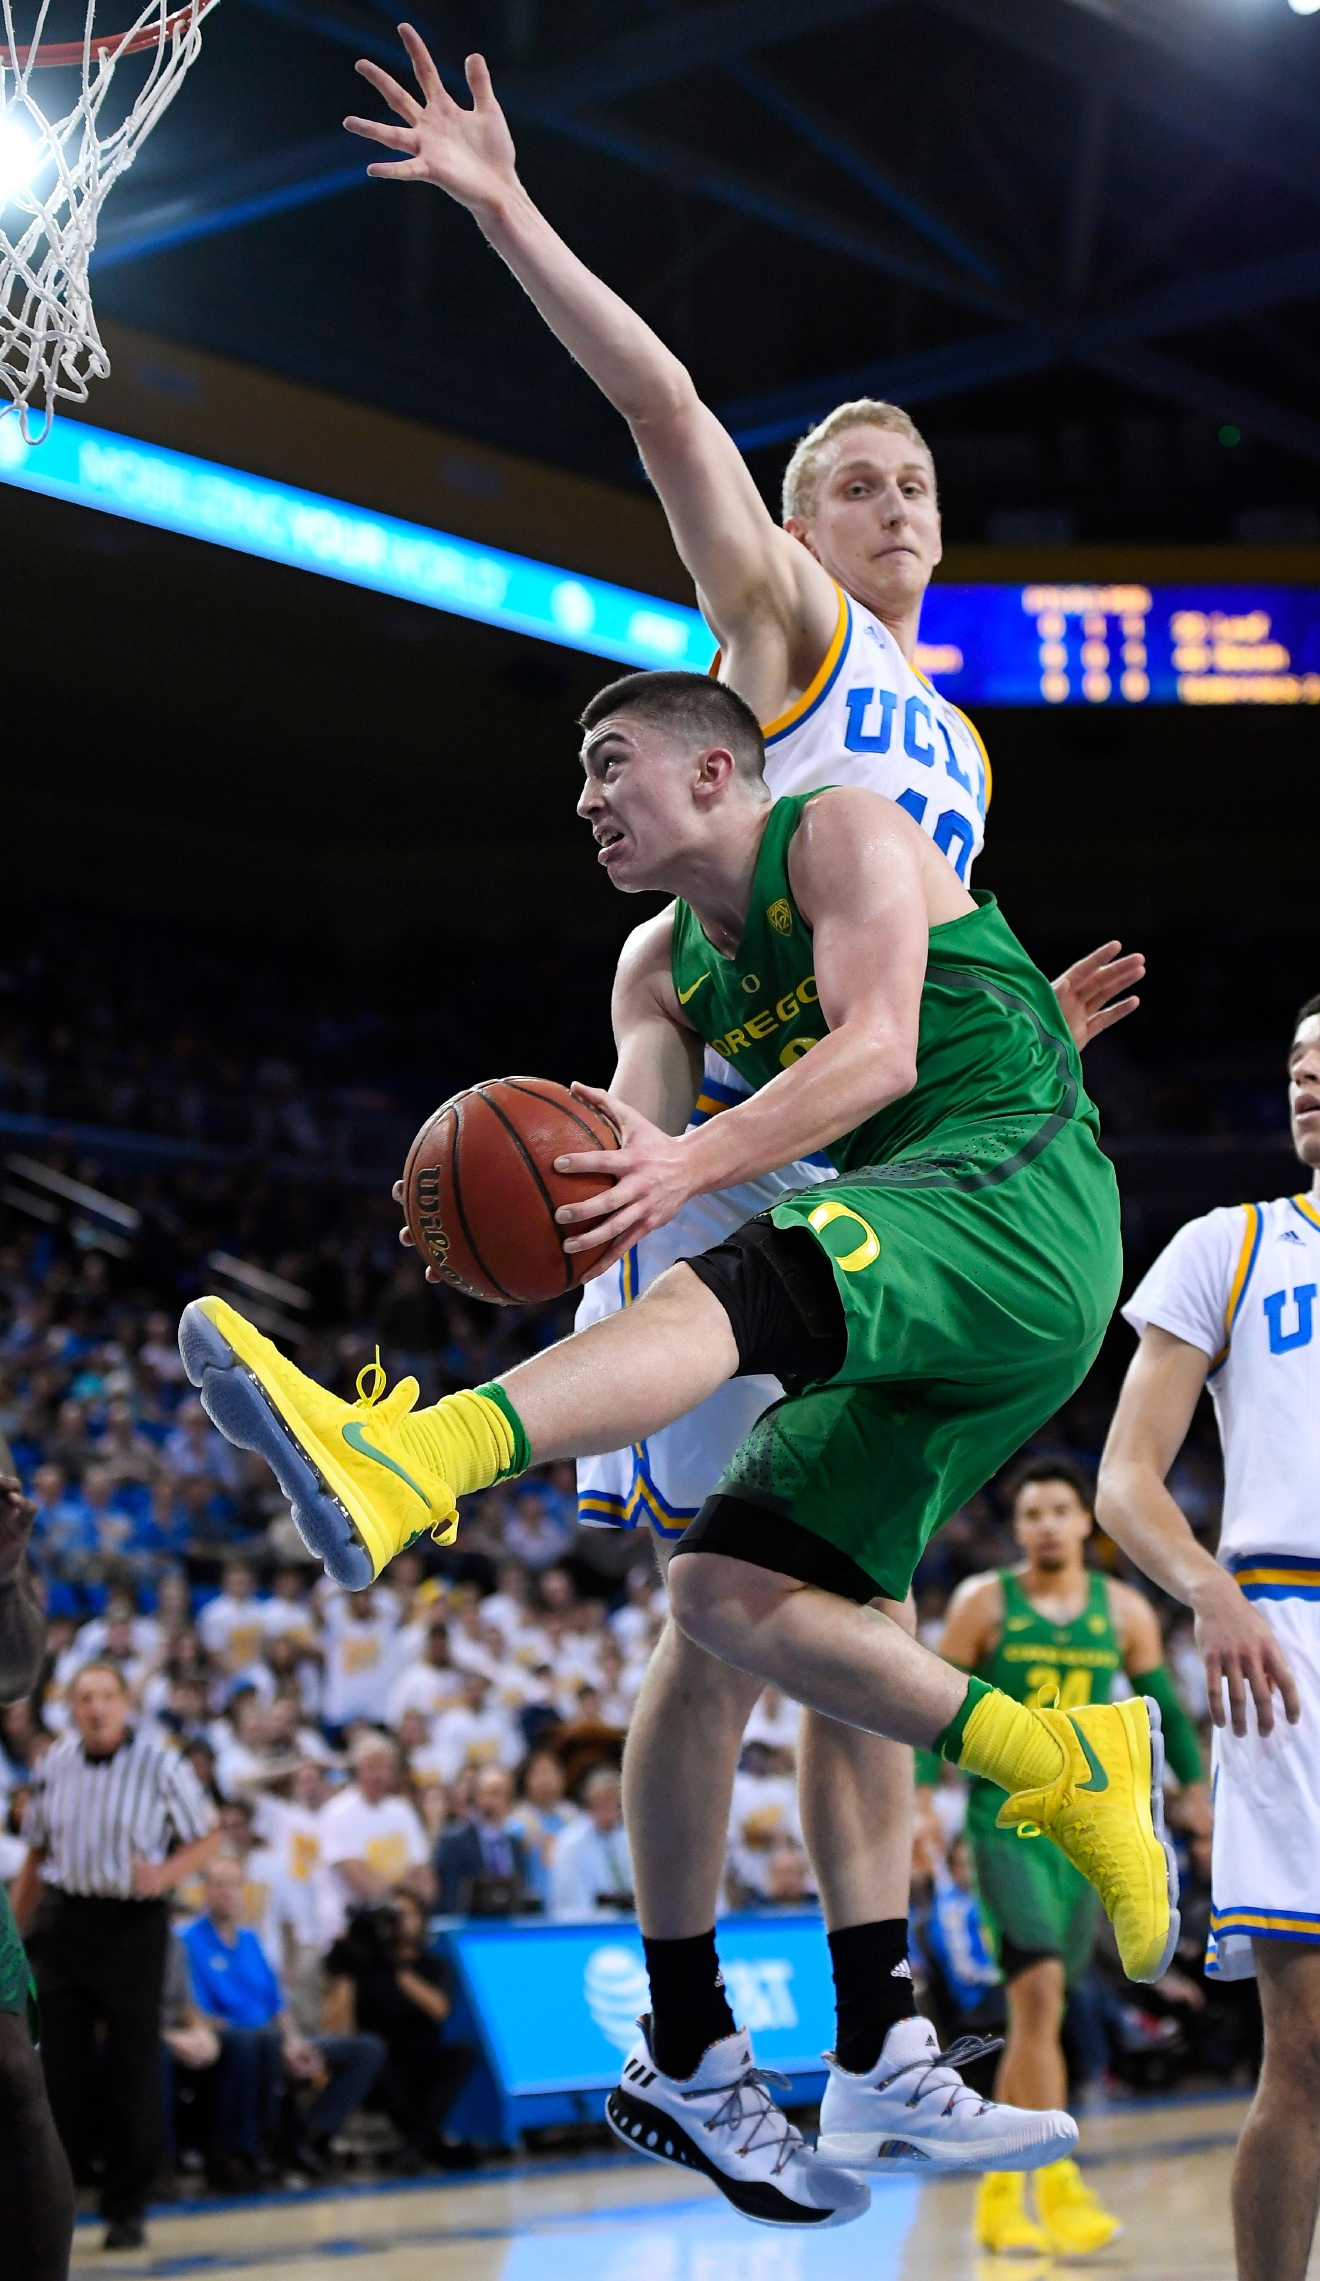 Oregon guard Payton Pritchard, below, shoots as UCLA center Thomas Welsh defends during the first half of an NCAA college basketball game, Thursday, Feb. 9, 2017, in Los Angeles. (AP Photo/Mark J. Terrill)